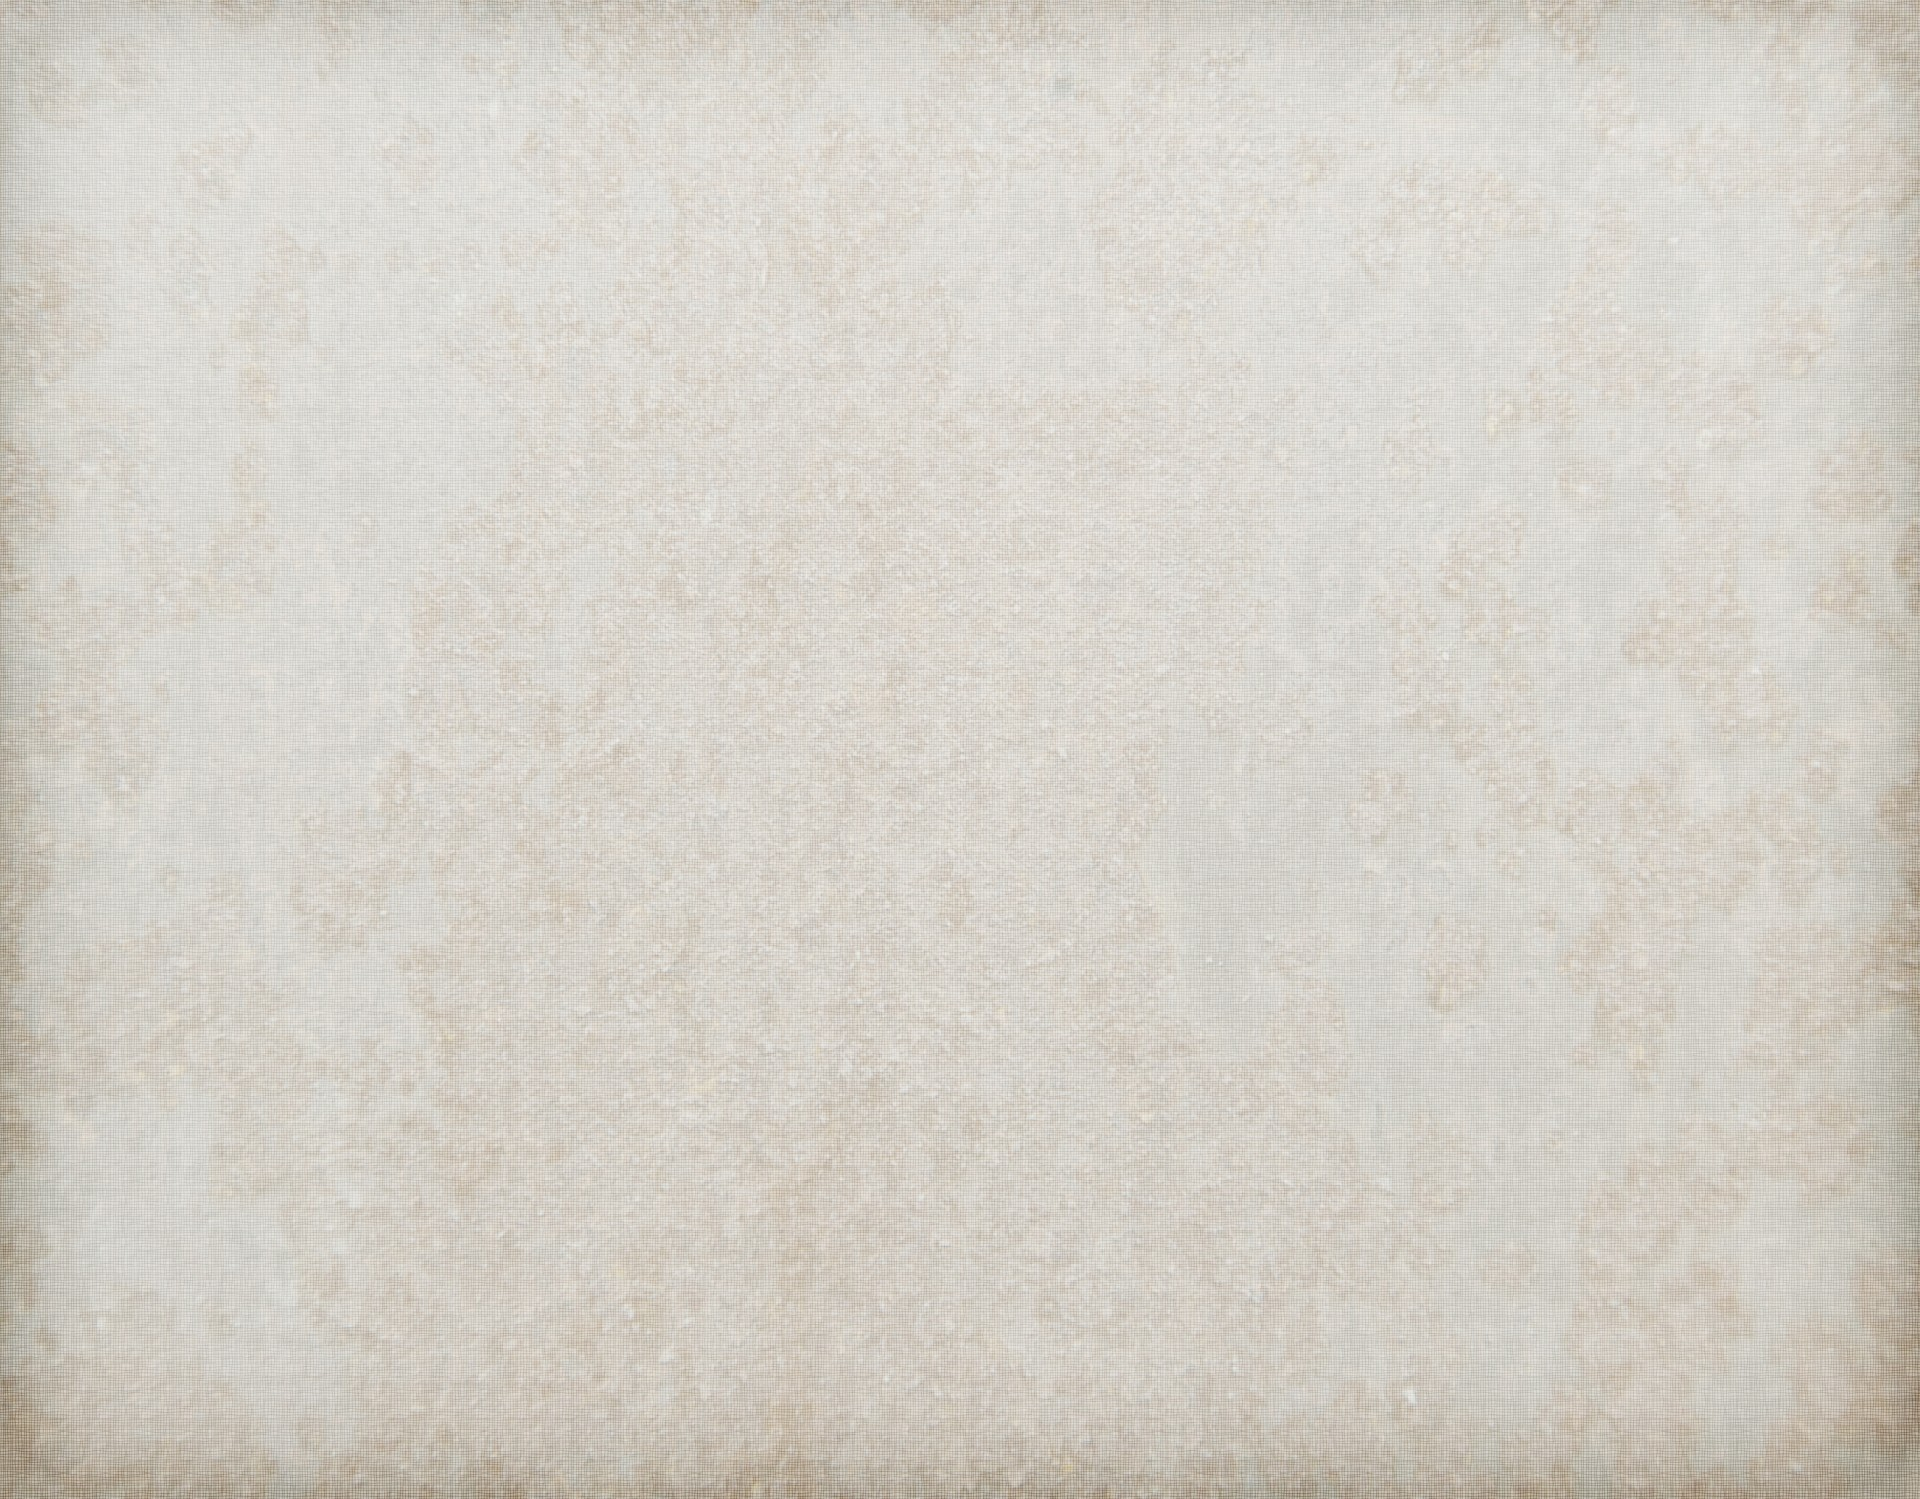 old-paper-texture-background-1380404417tNE (1) – 4north22, llc